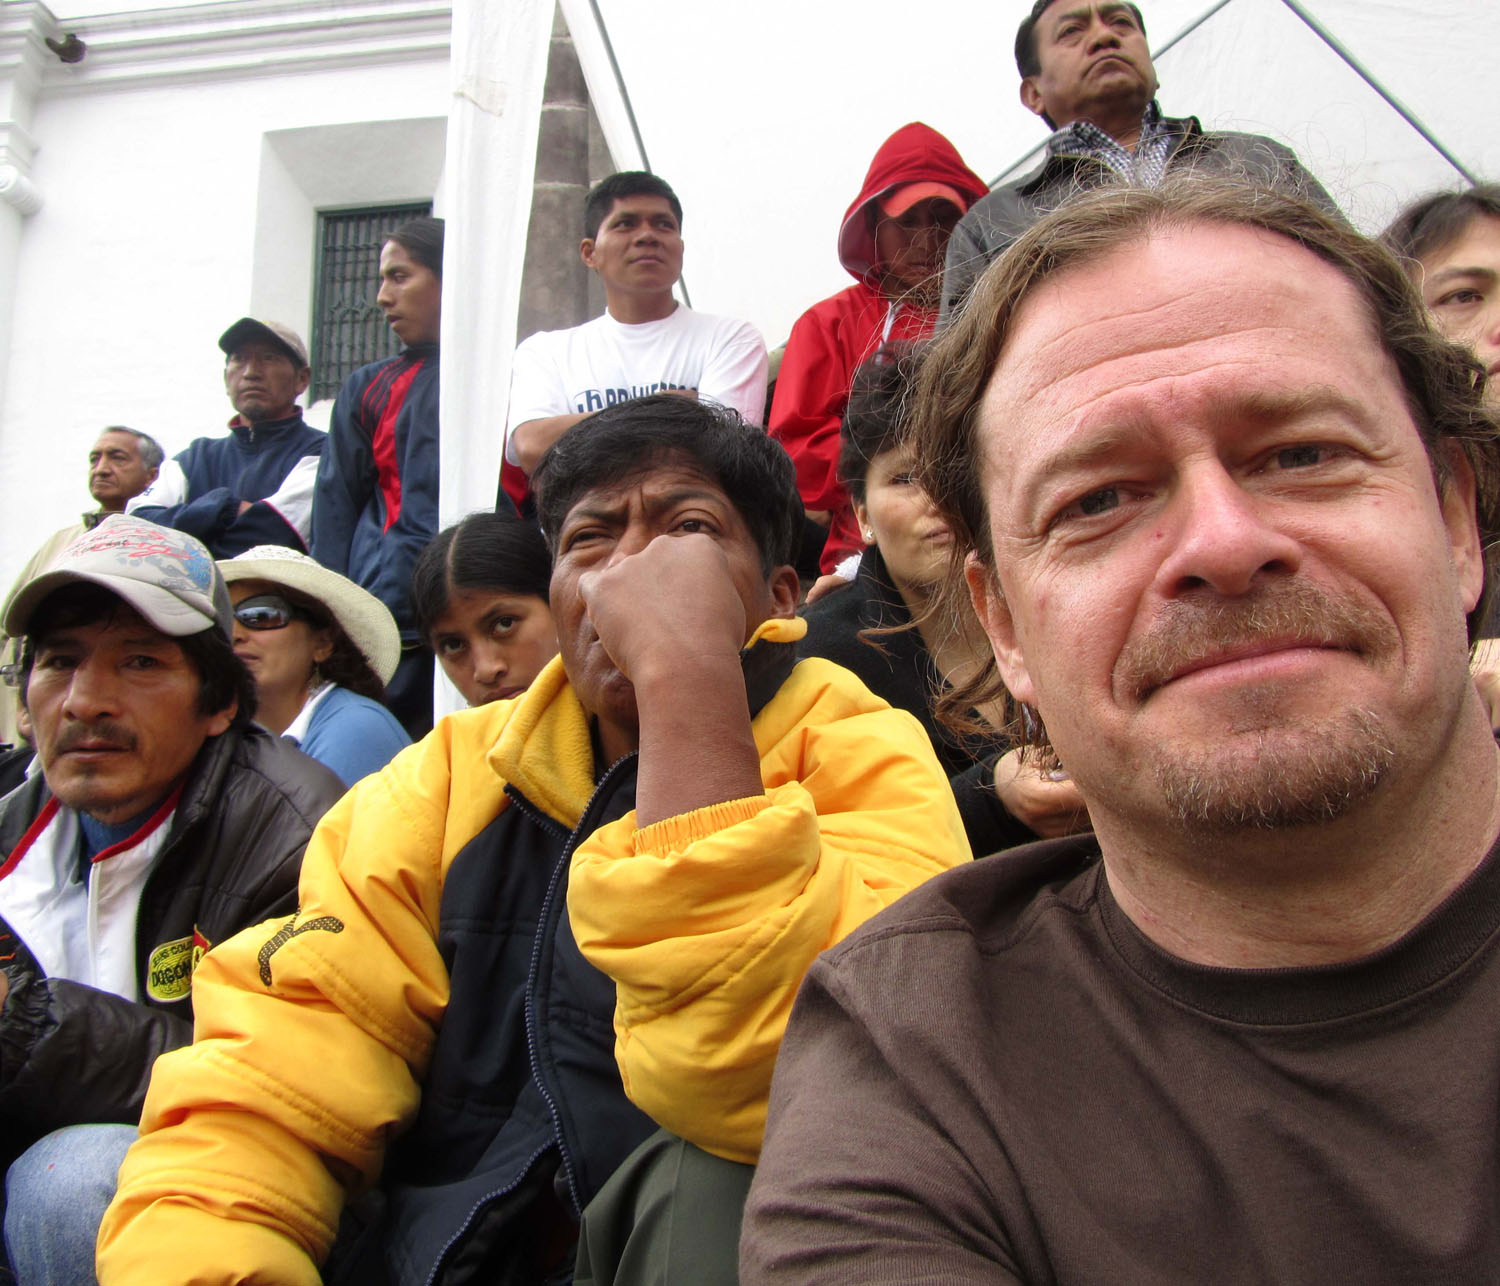 Ecuador-Quito-Plaza-Frank-Amongst-Crowd